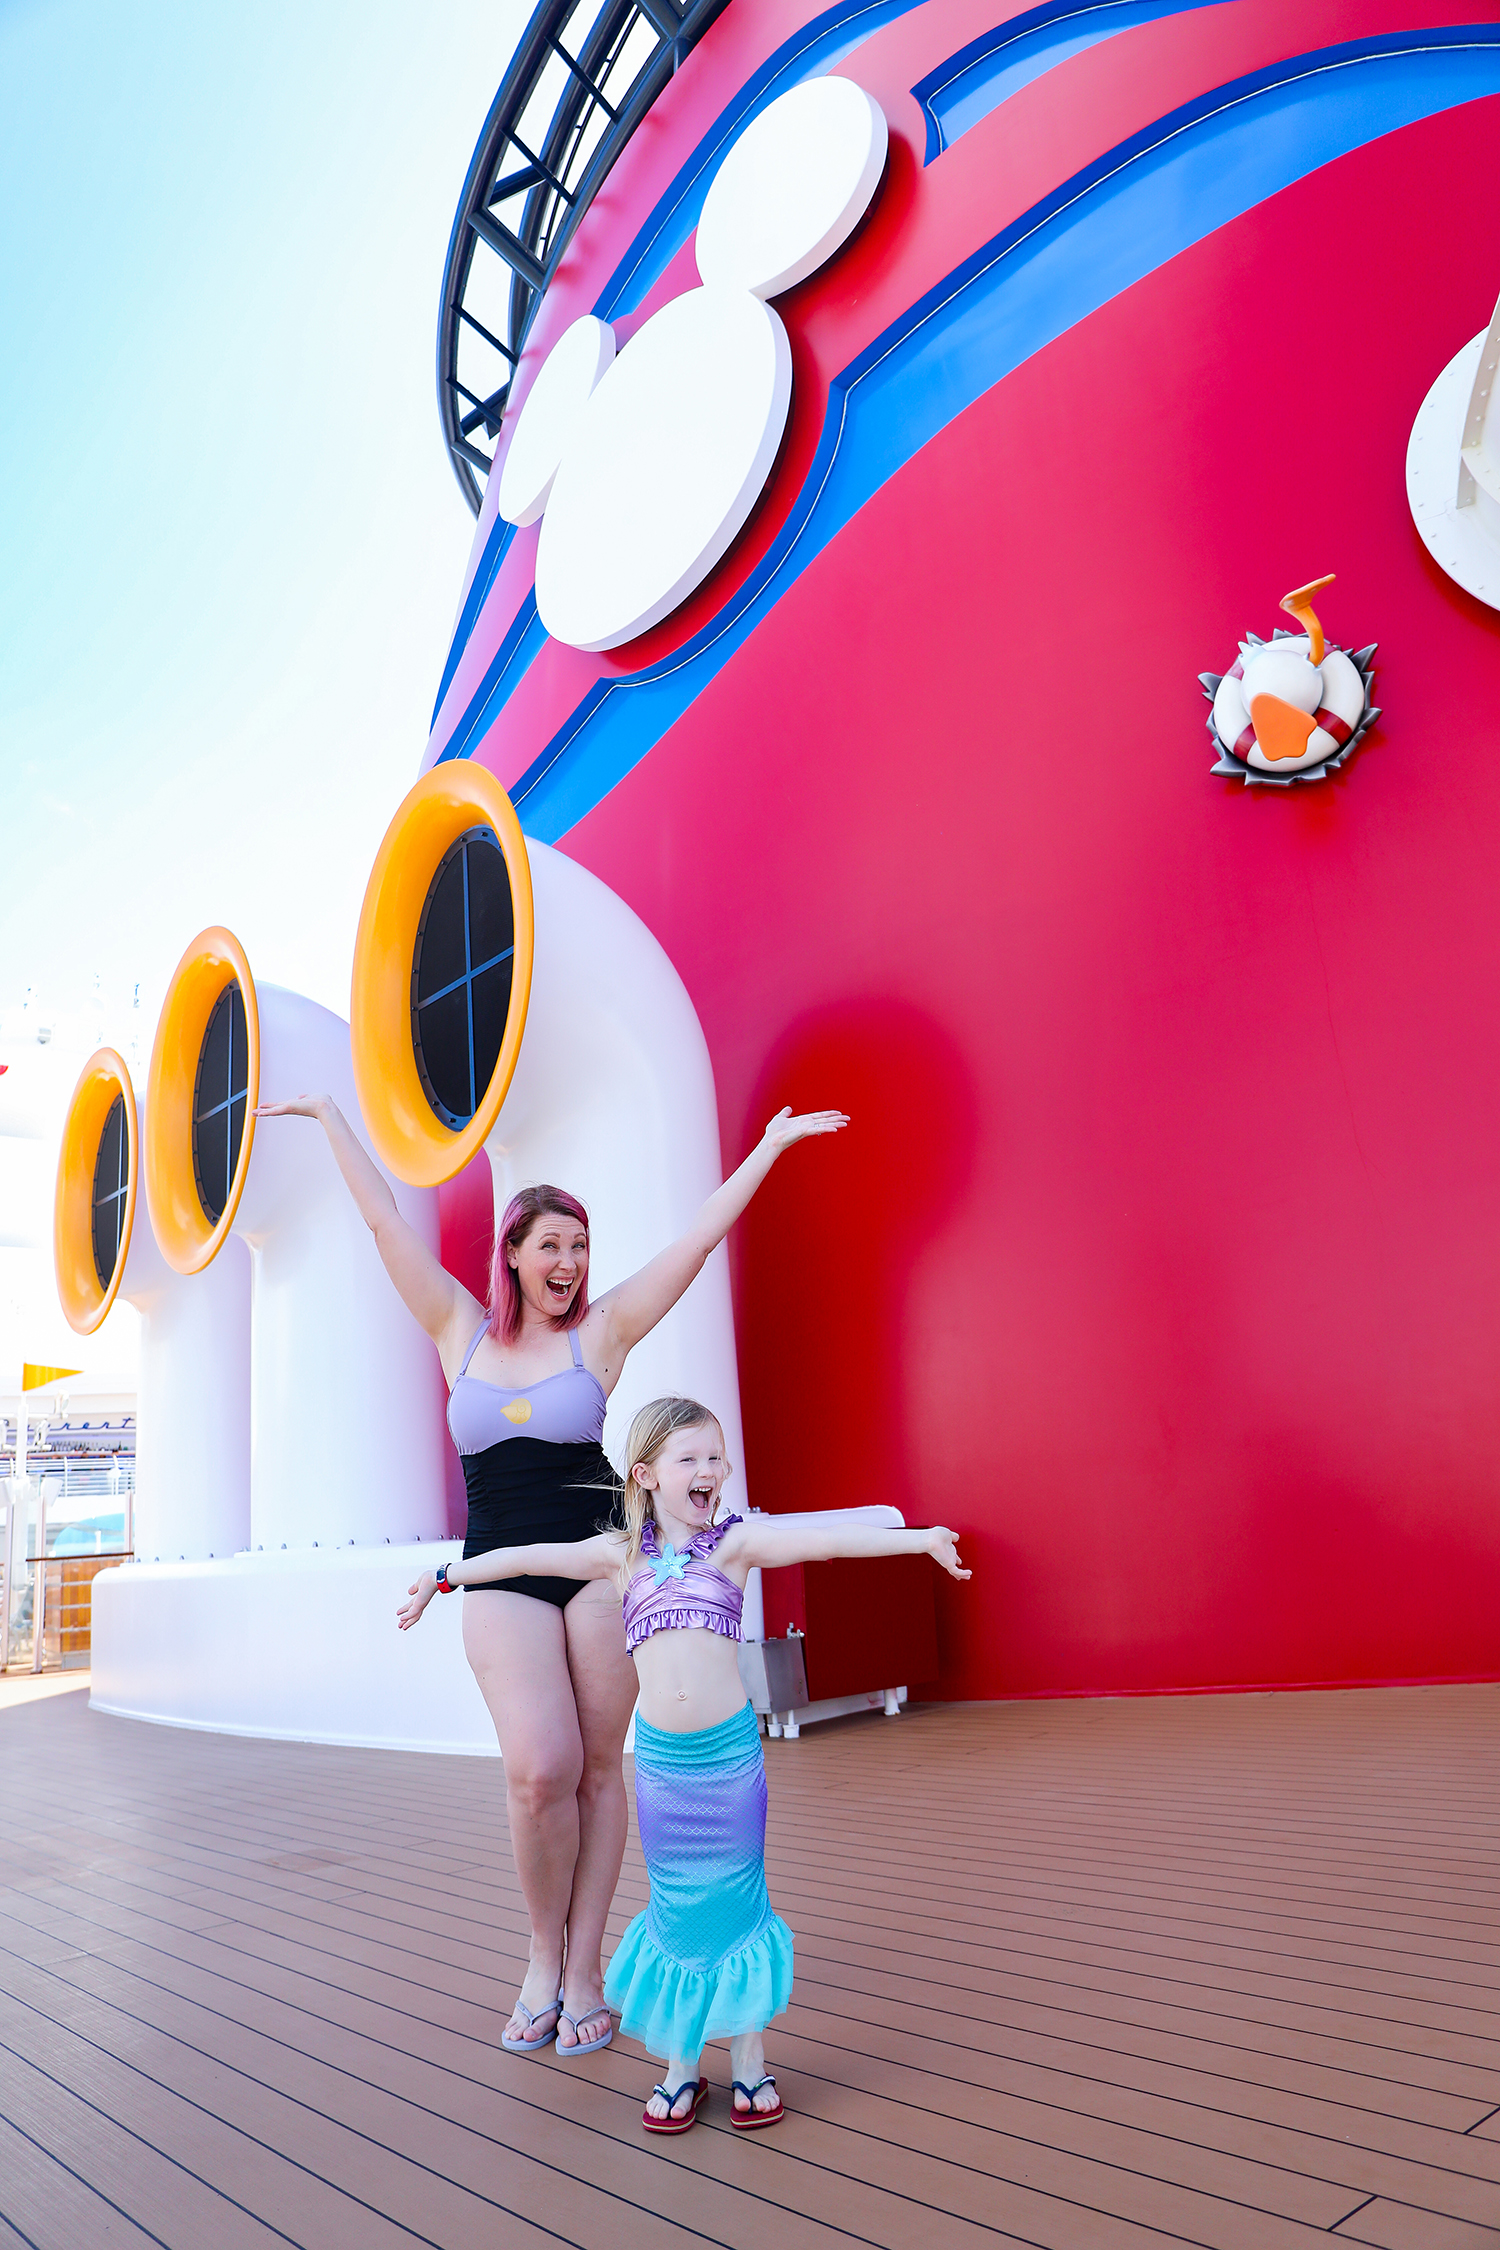 Disney Cruise Outfits: These Disney Bathing Suits are PERFECT!